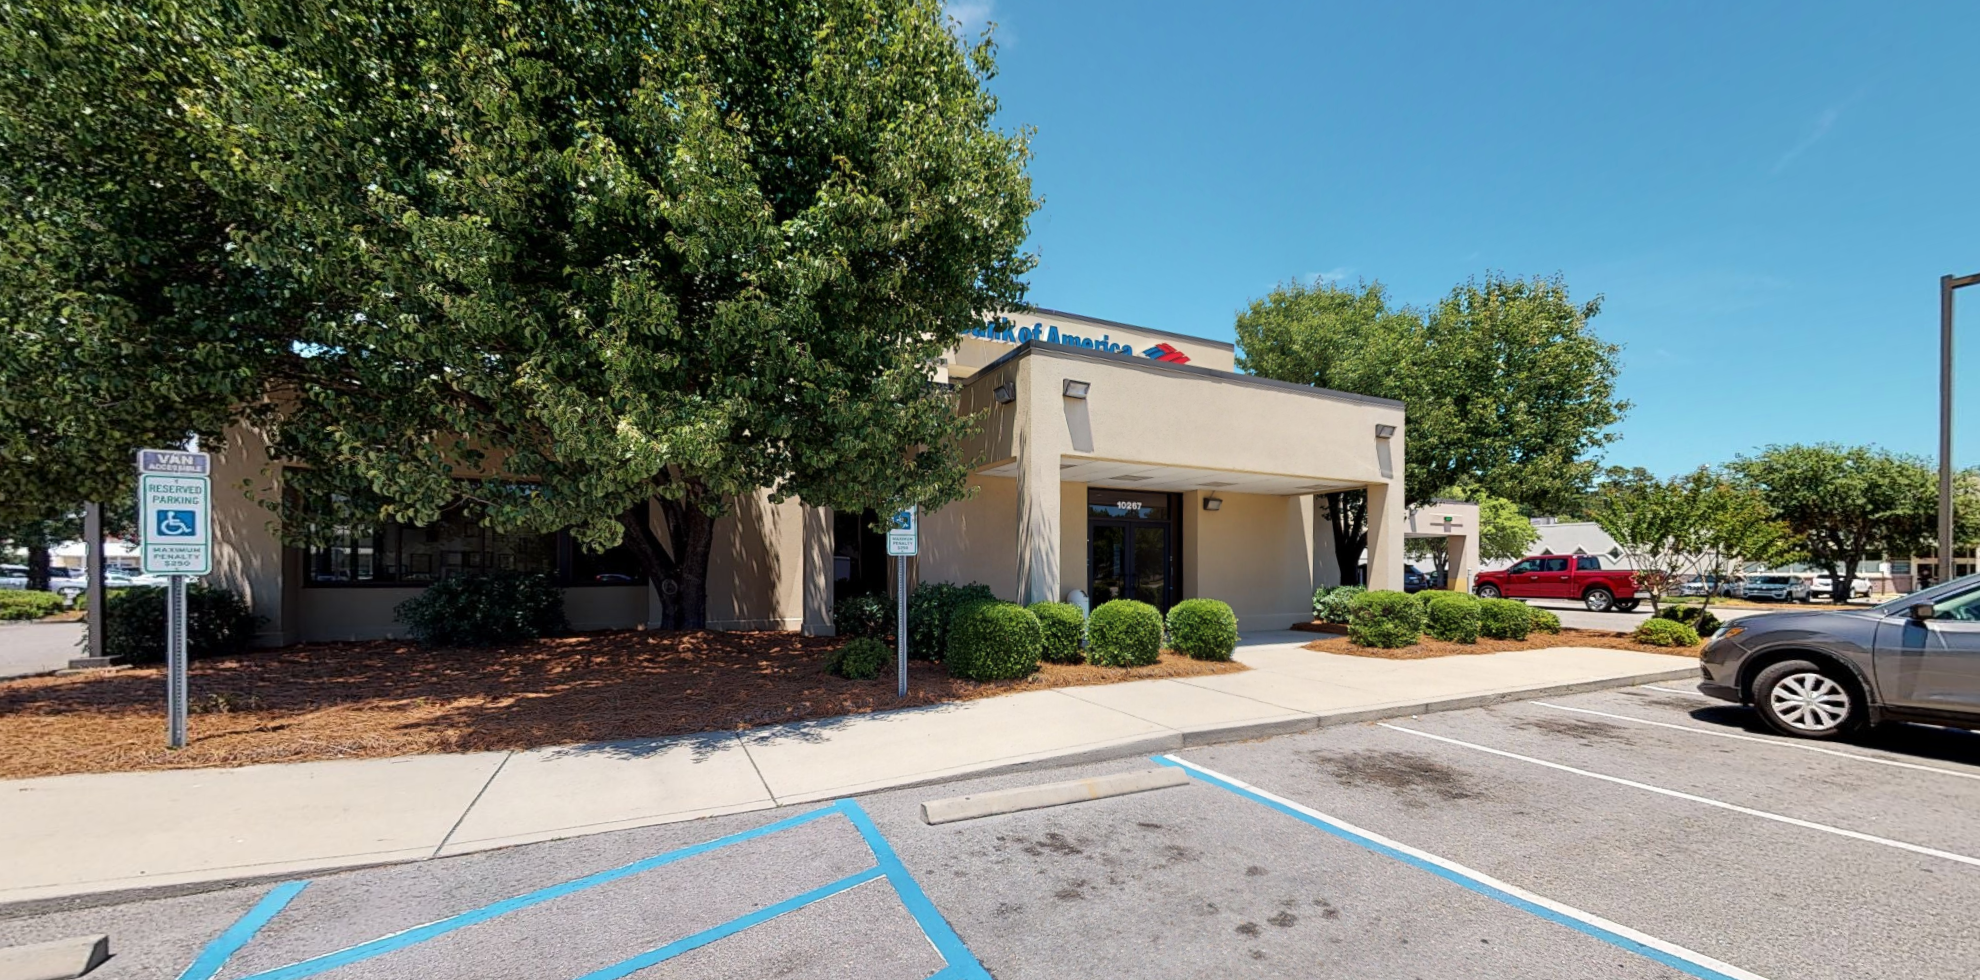 Bank of America financial center with drive-thru ATM and teller   10267 Ocean Hwy, Pawleys Island, SC 29585